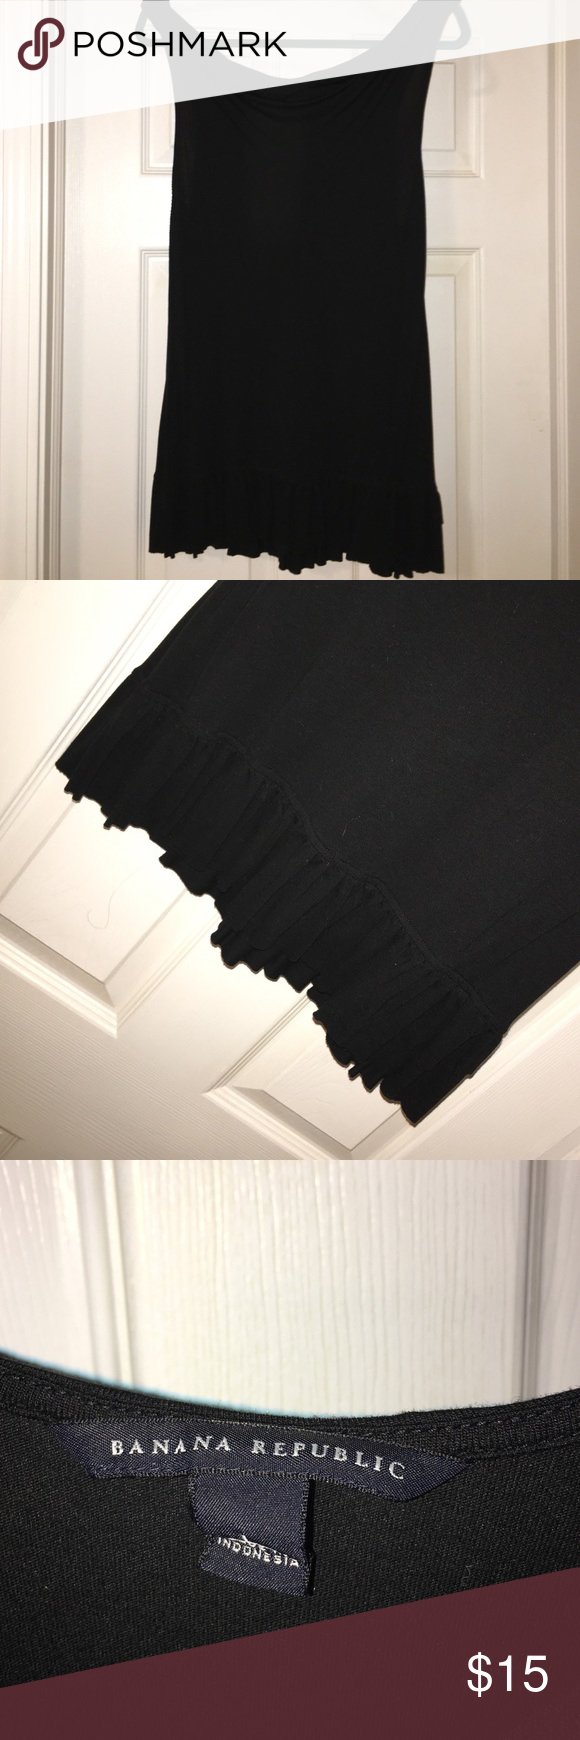 Banana republic black tank Long black tank with ruffle bottom hen worn once. Good condition Banana Republic Tops Tank Tops